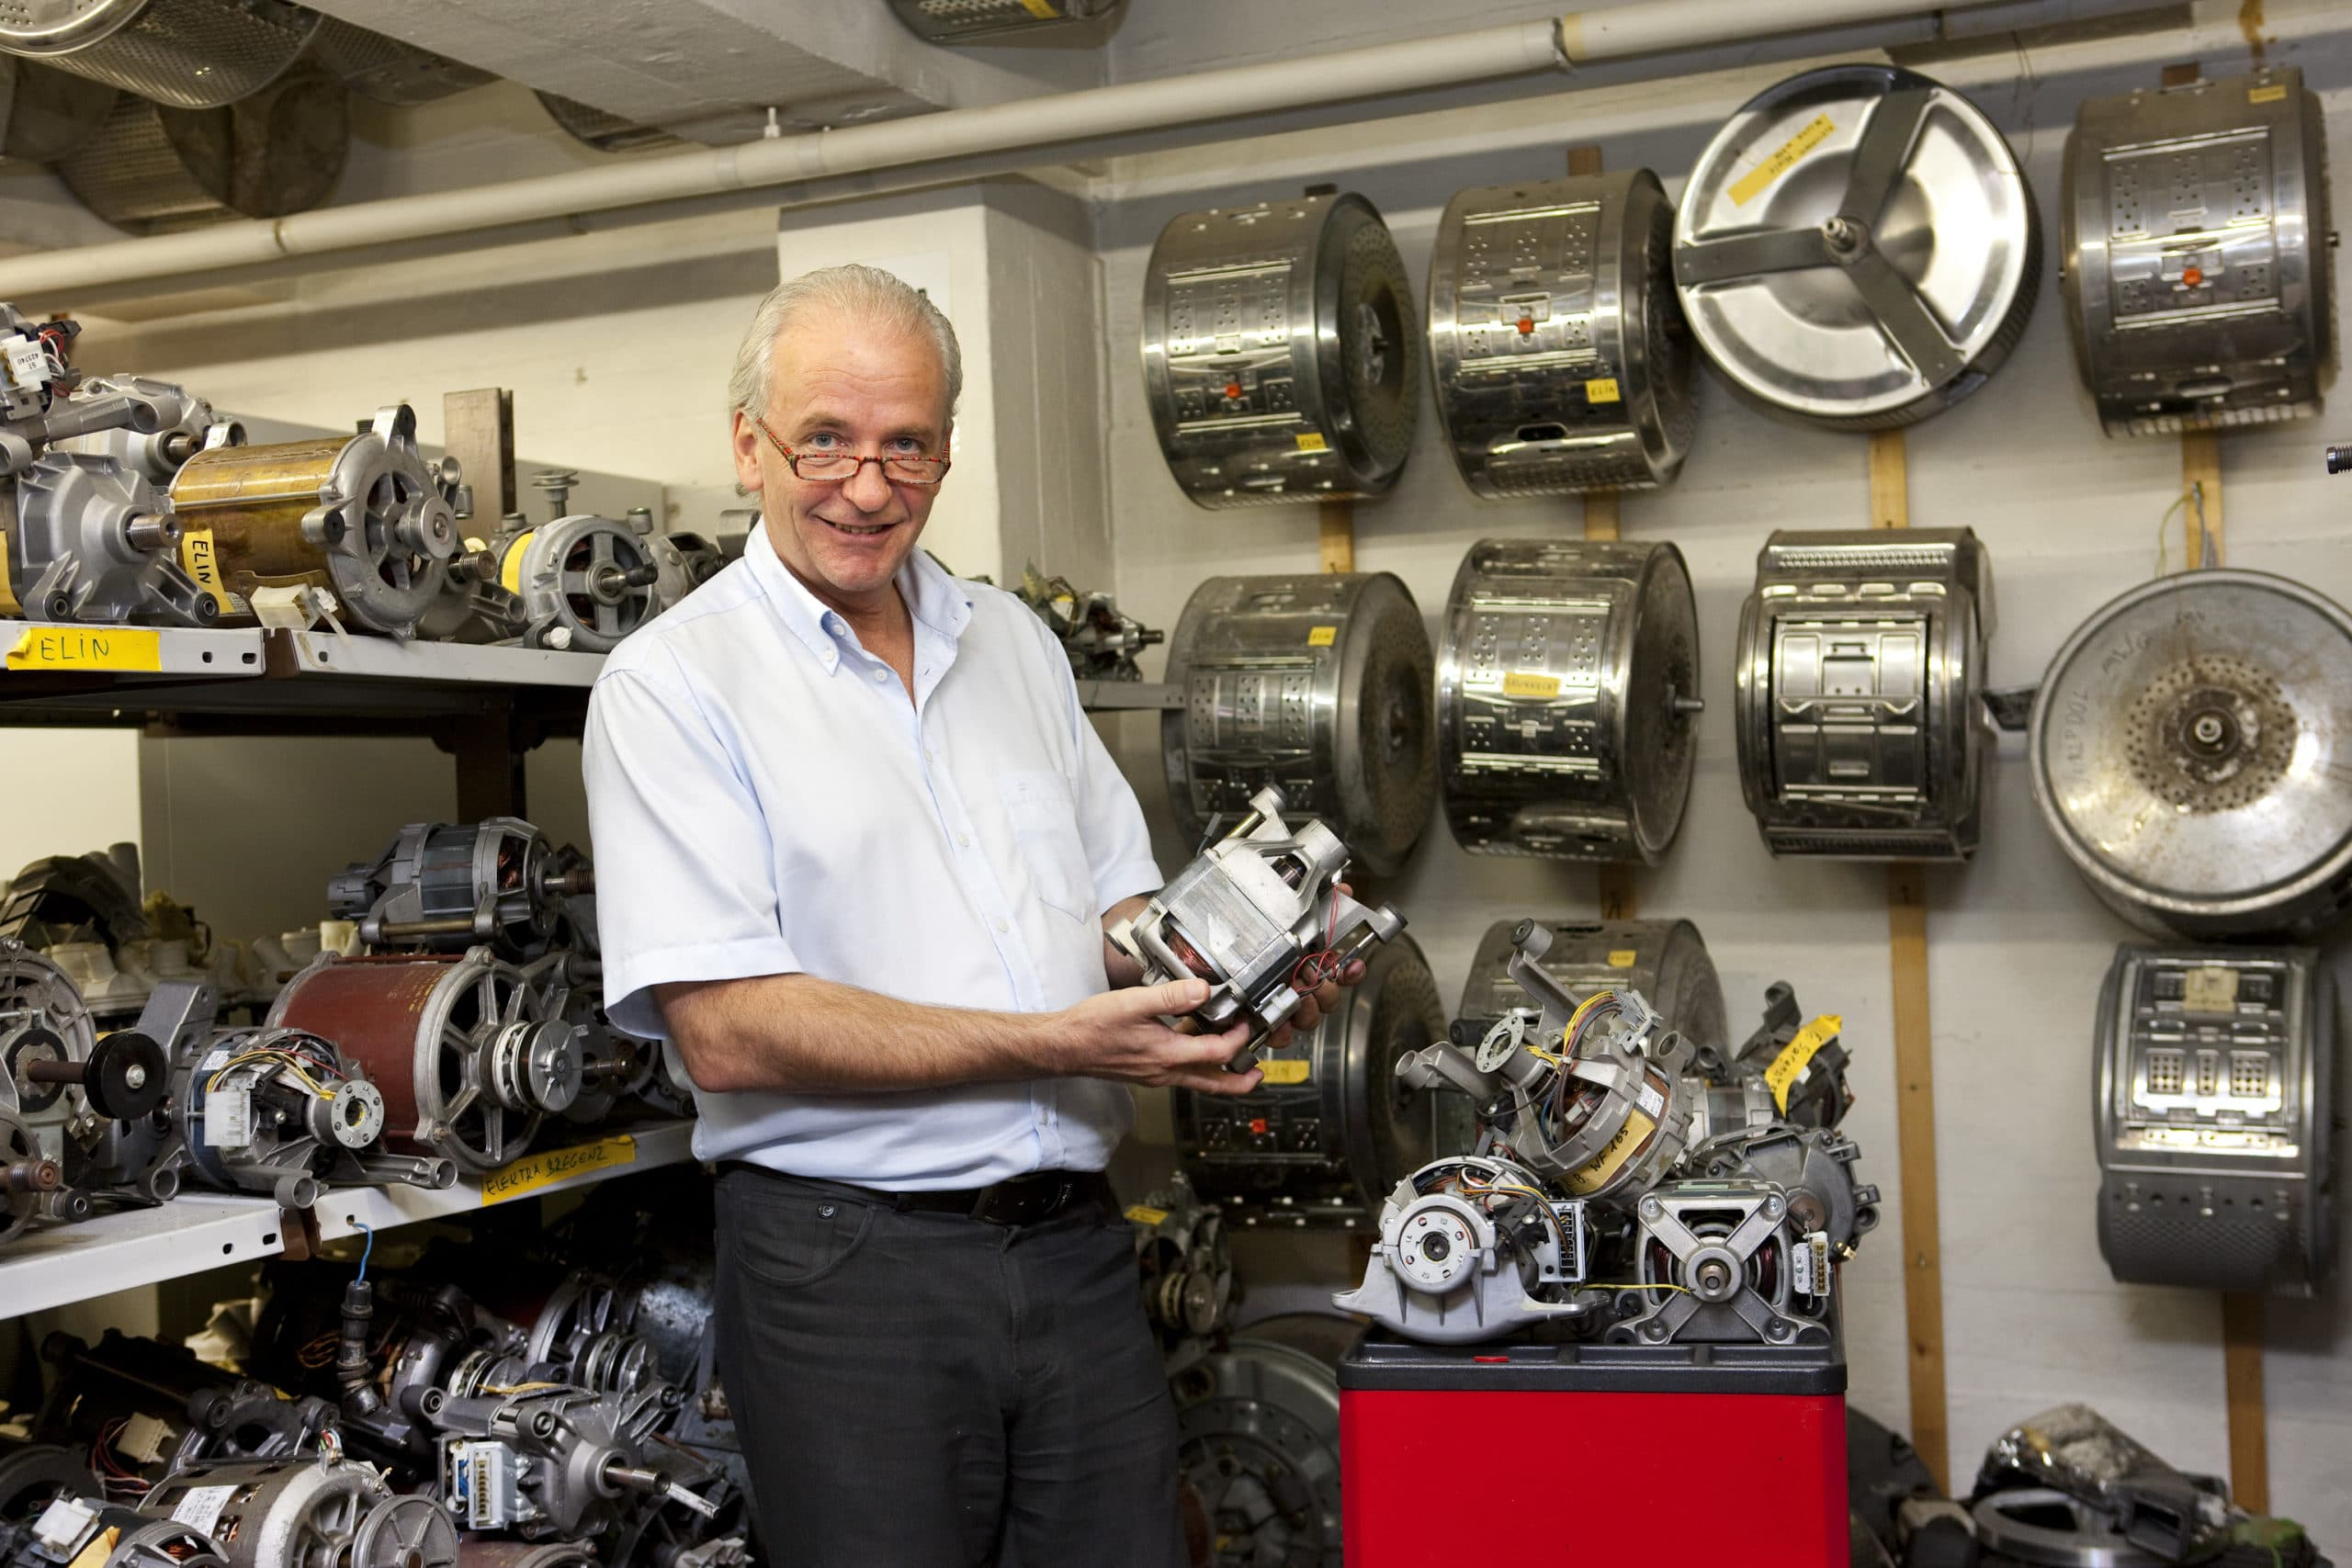 Putting re-use and repair at the heart of circular economy legislation